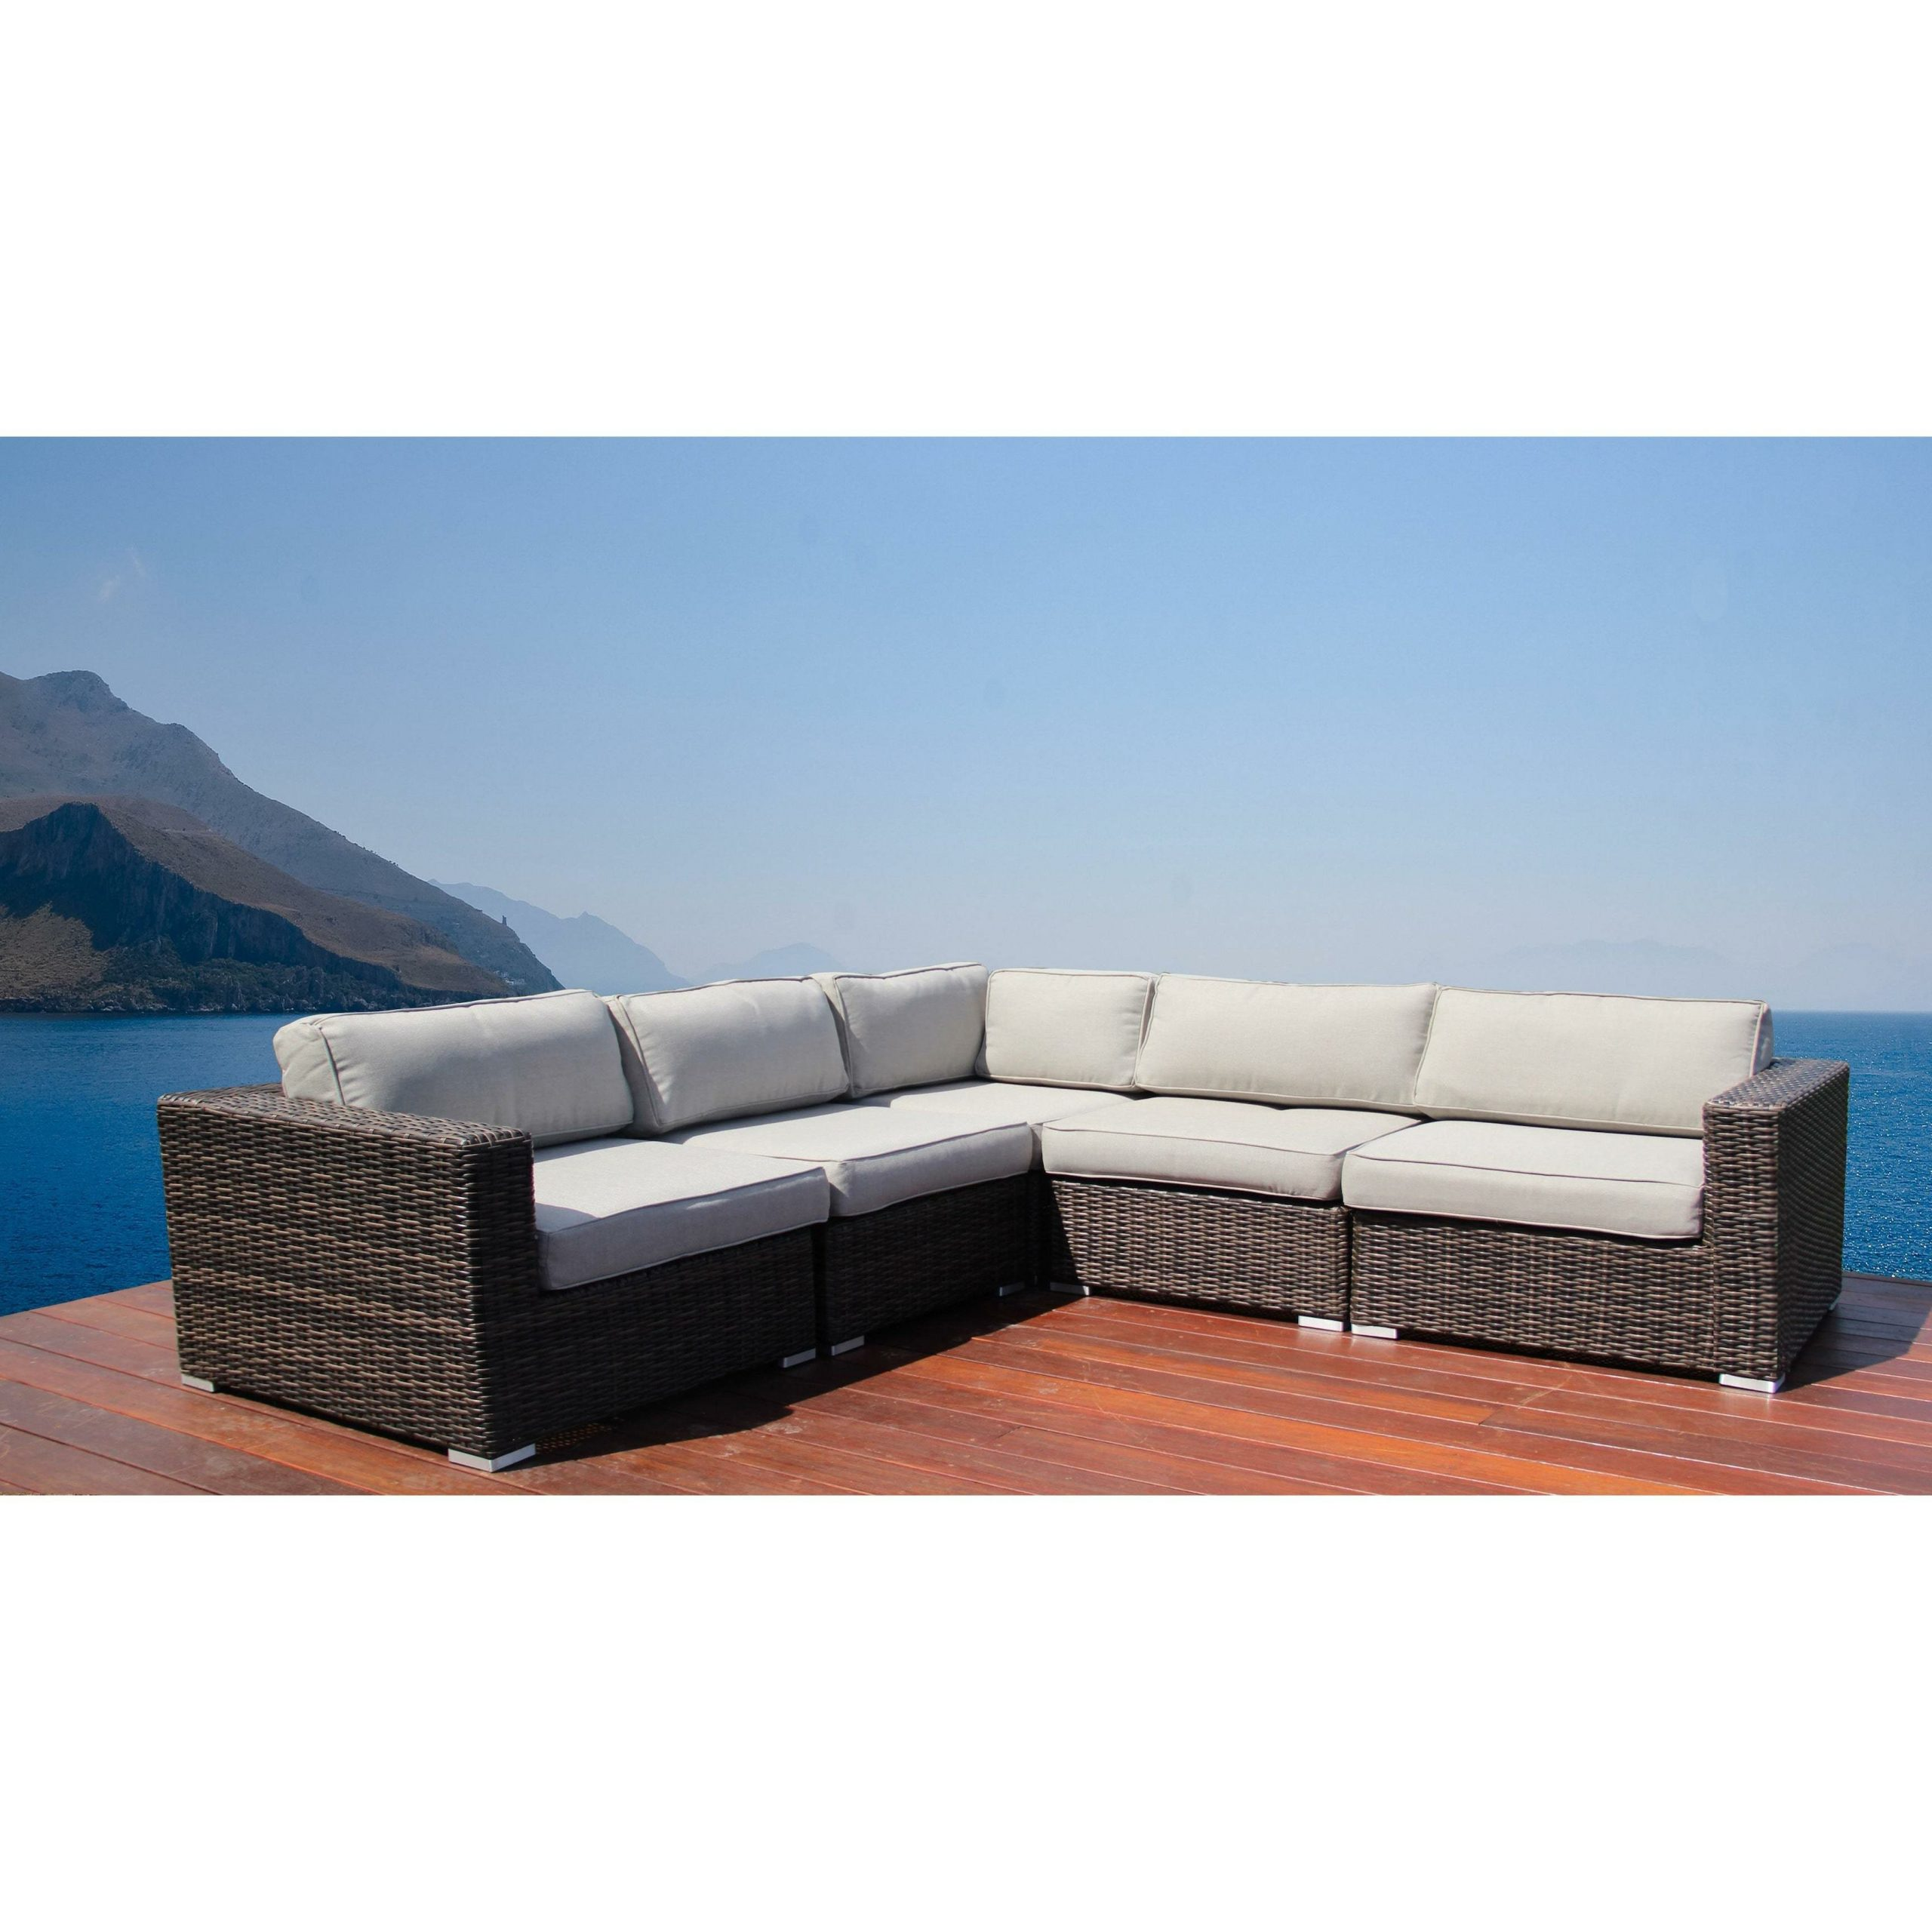 Fashionable Eldora Patio Sectional With Cushions With Burruss Patio Sectionals With Cushions (View 20 of 25)